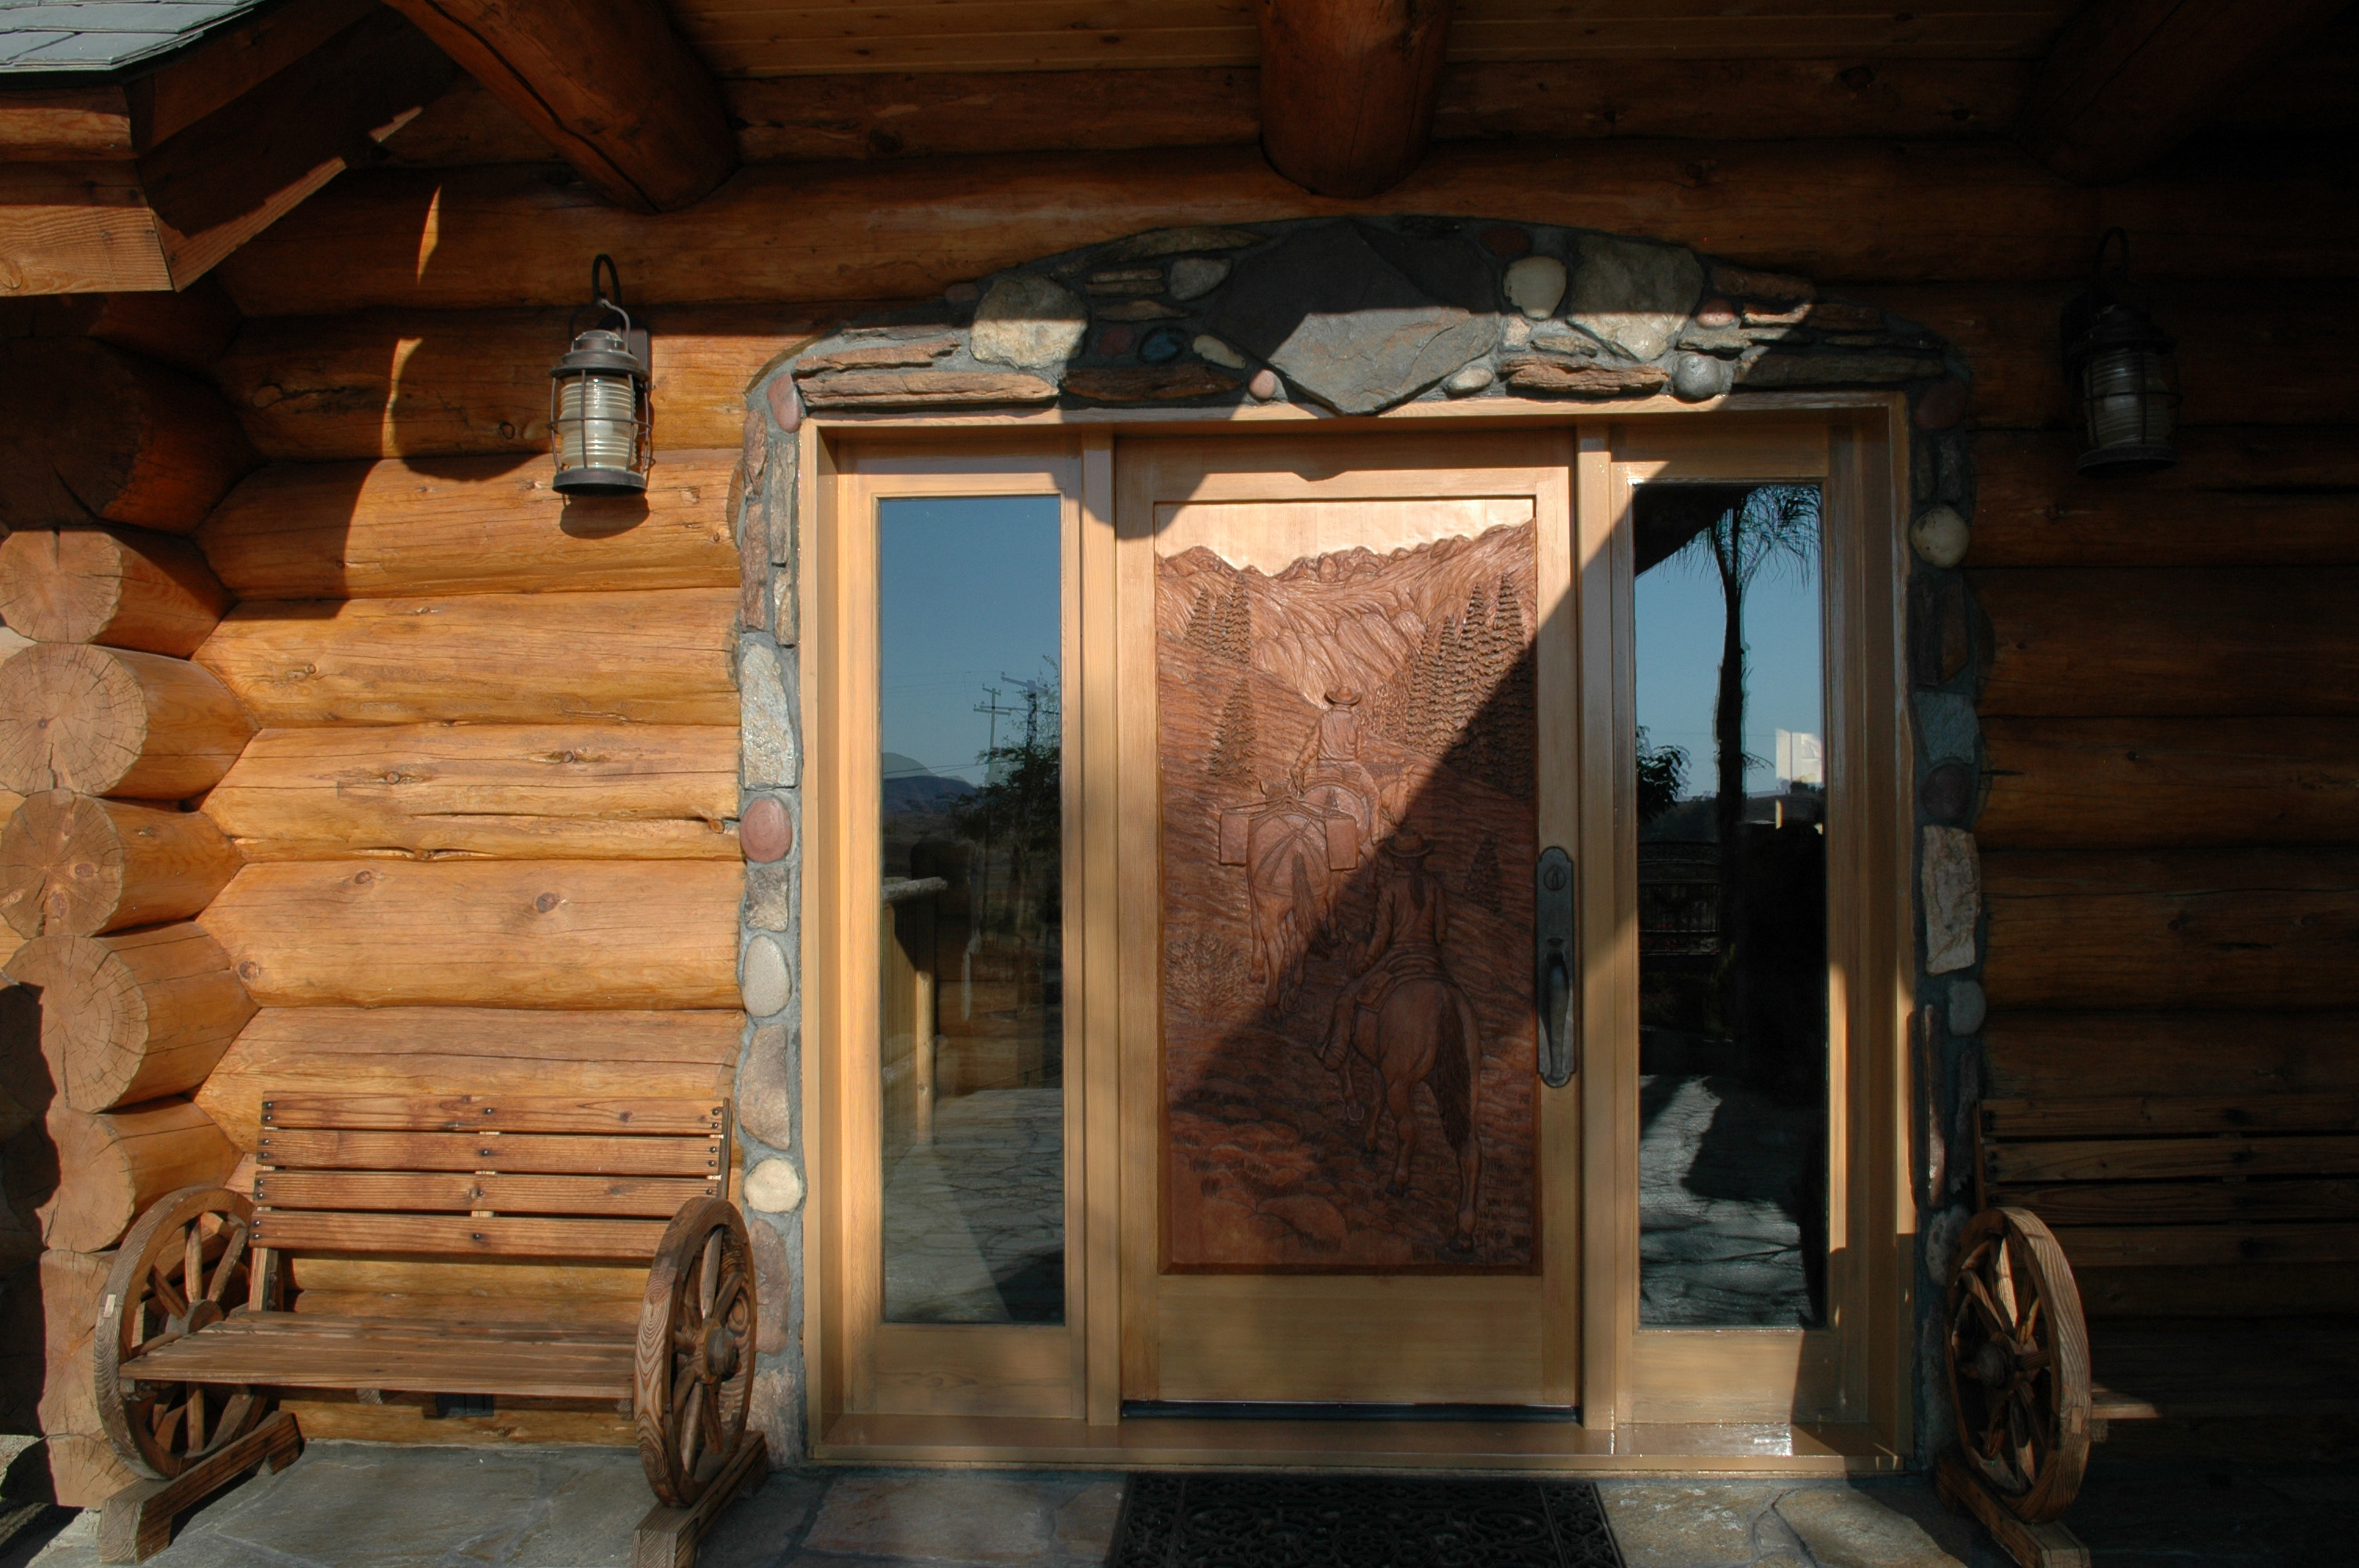 Showcase log home california acreage to sell at auction for Selling a log home